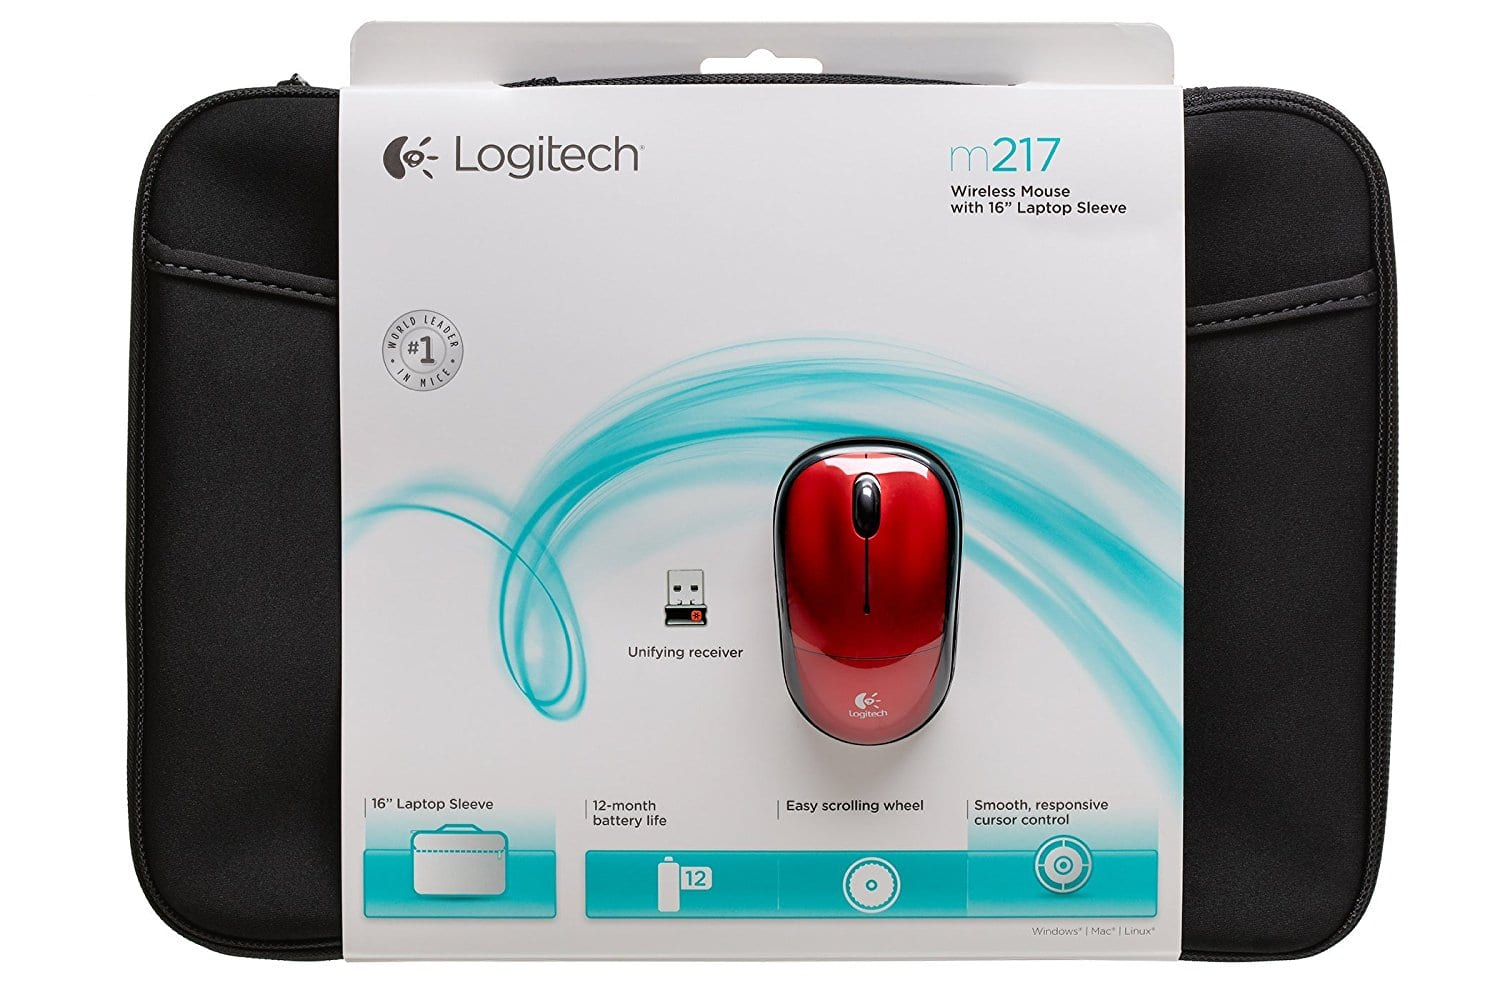 Fry's Email Exclusive: Logitech M217 Mouse + 16